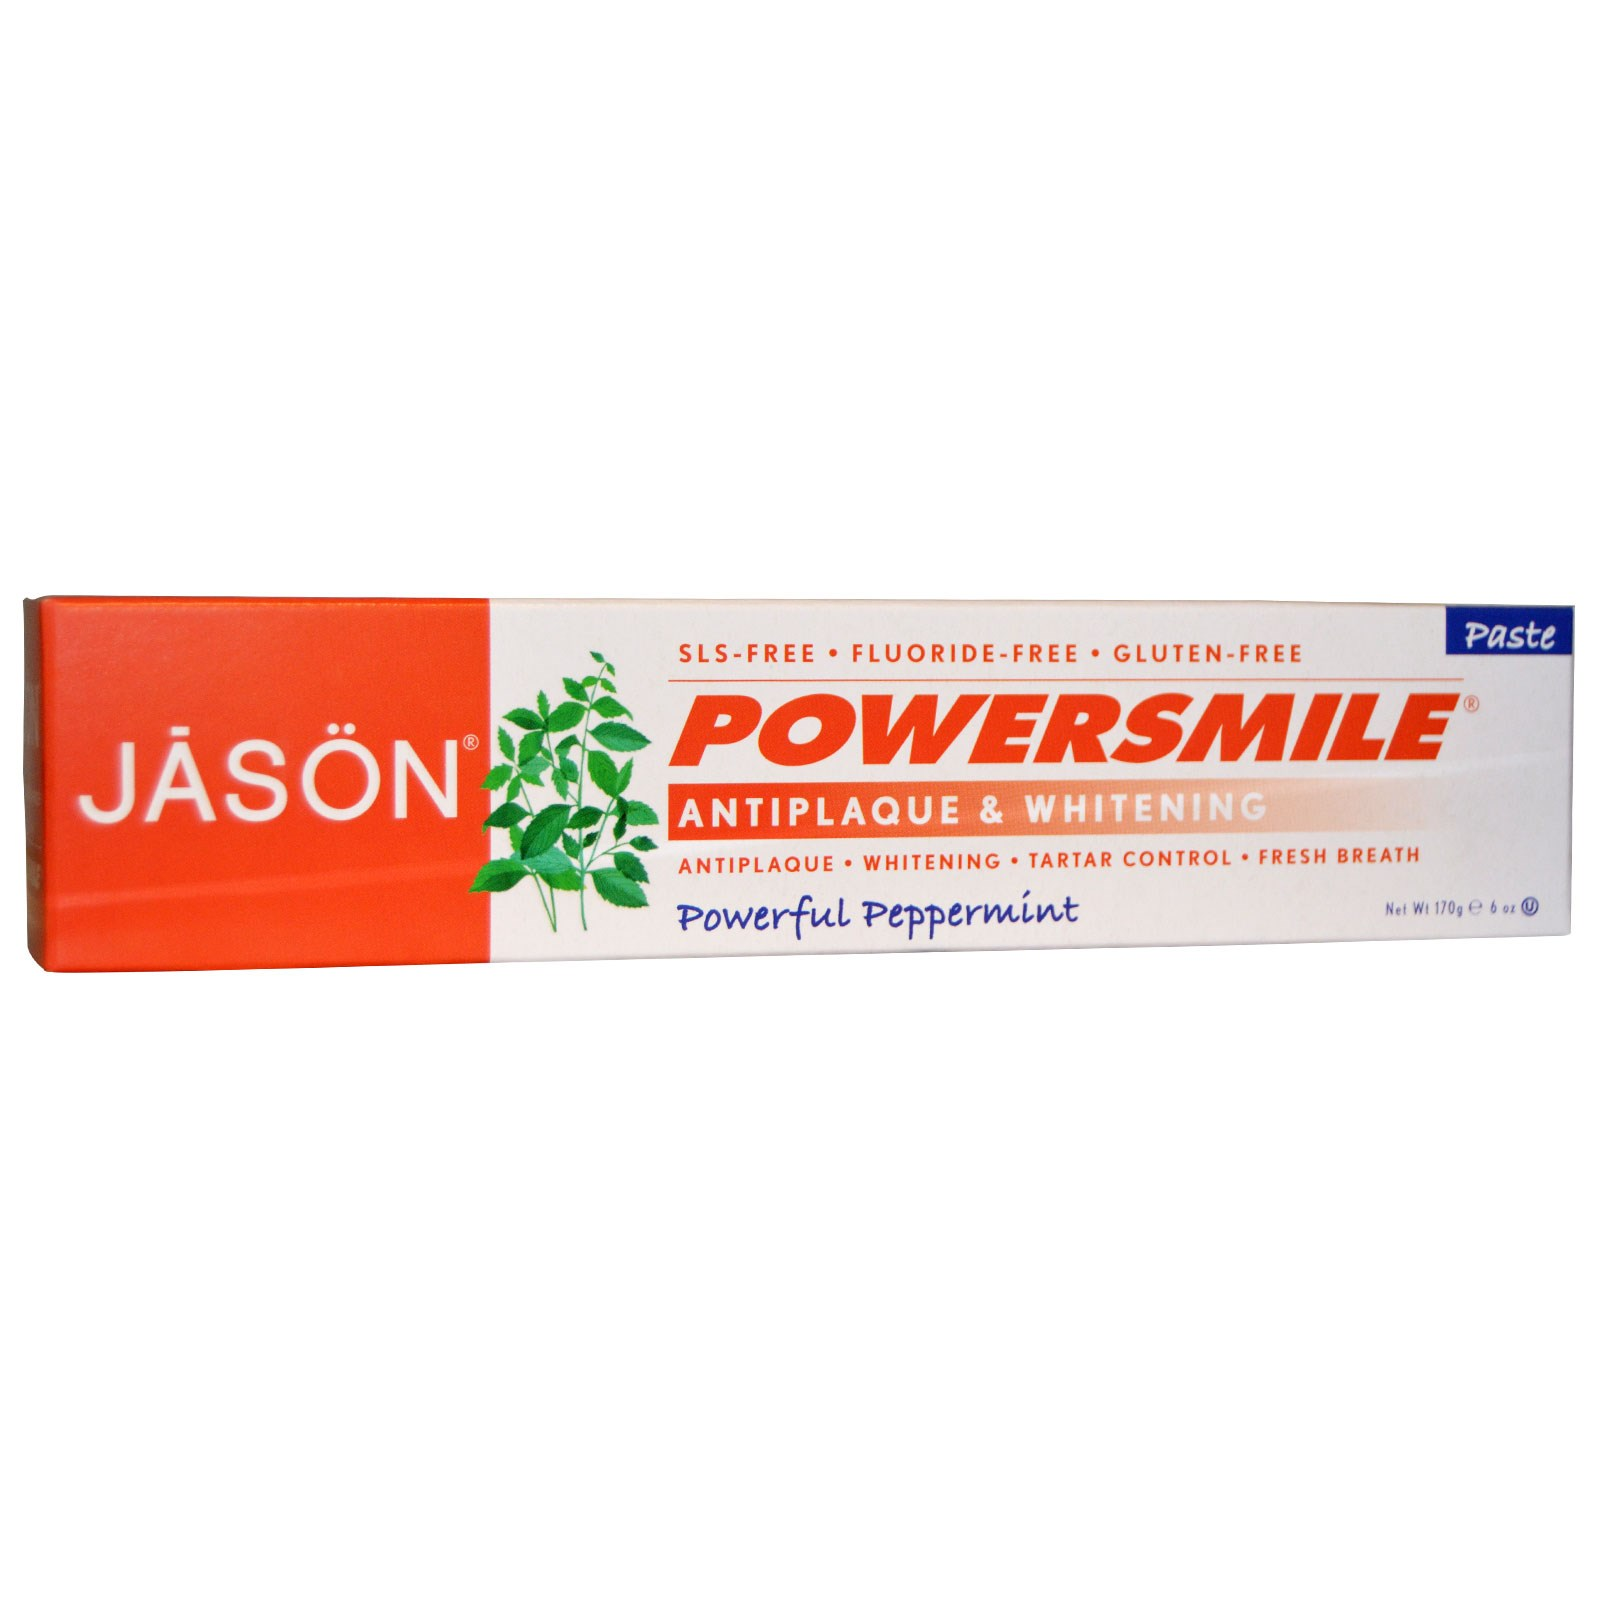 Зубная паста PowerSmile, Jason Natural, 170 г.